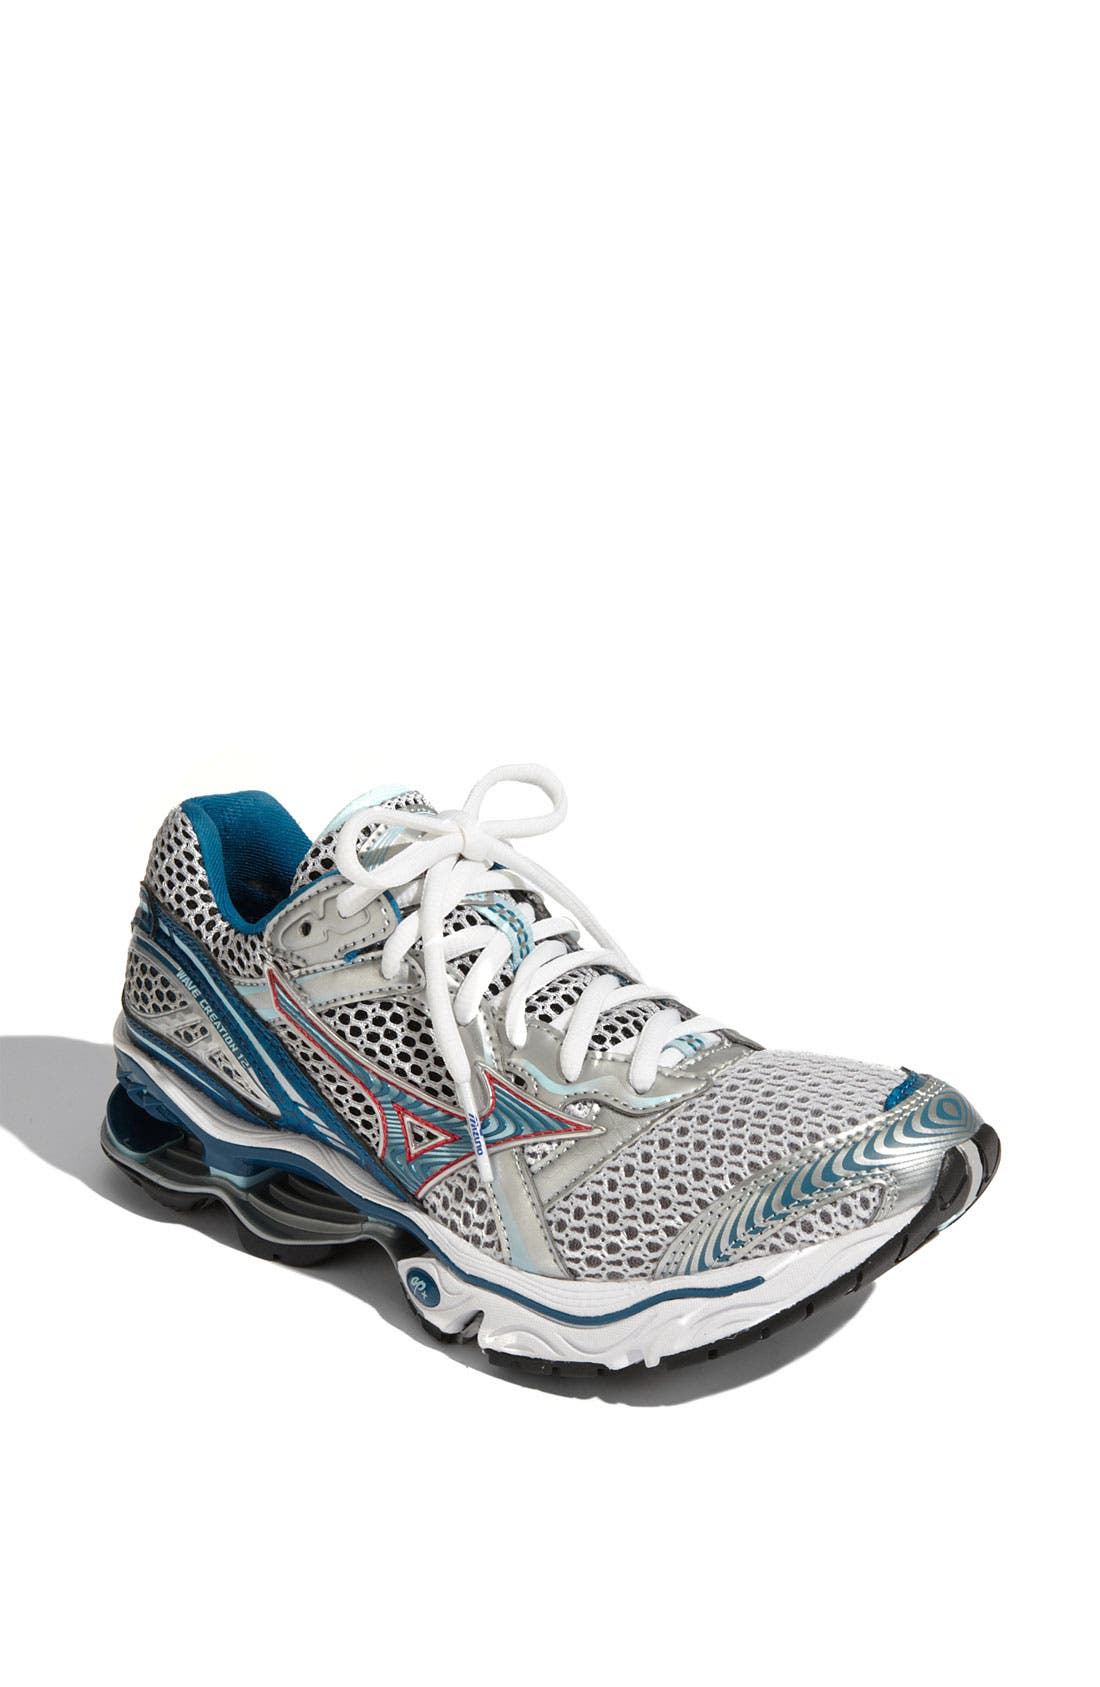 mizuno wave creation 12 mens